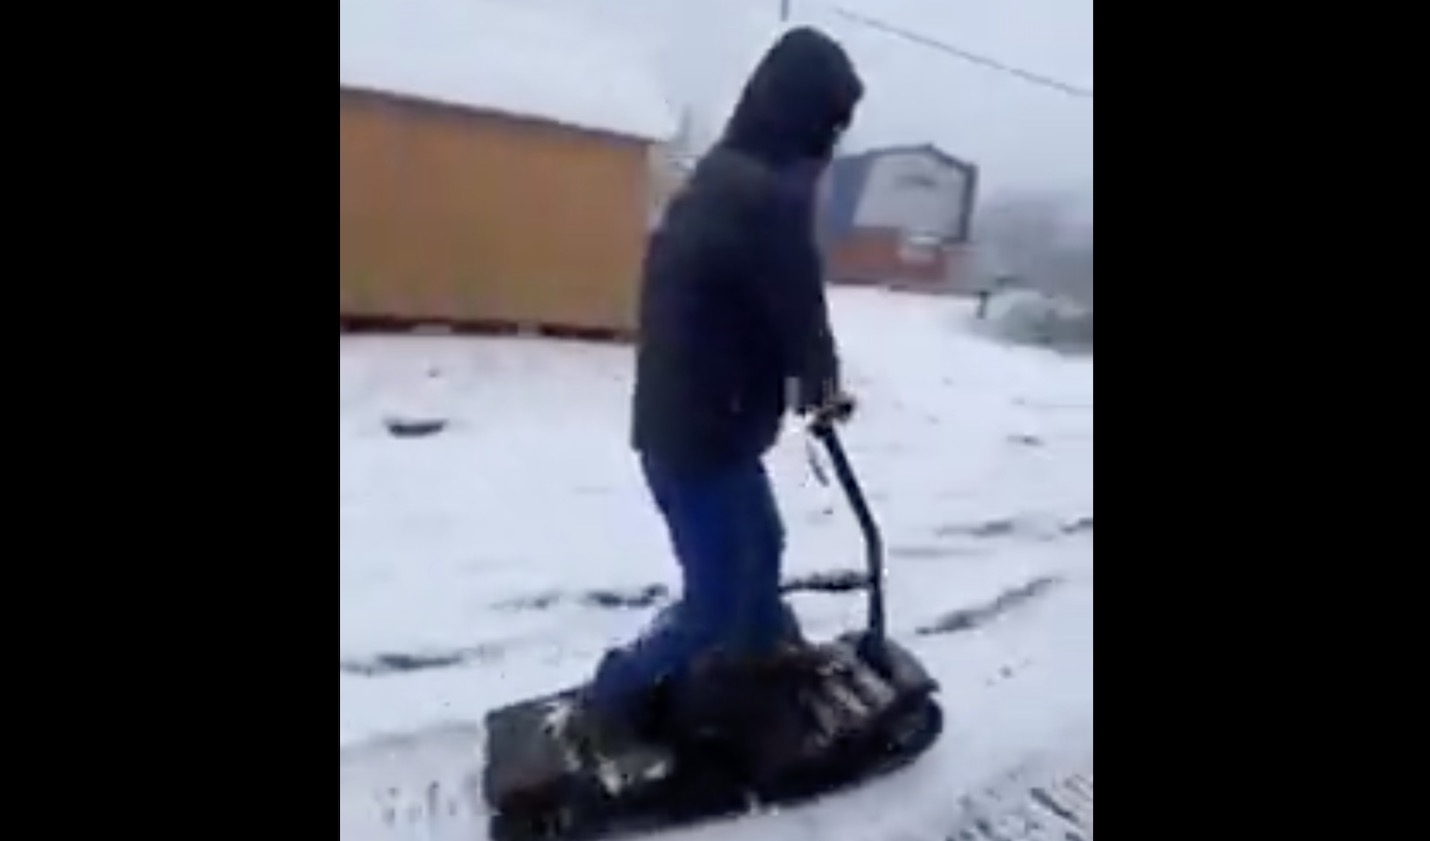 Homemade Snowmobile Test Drive Goes... Well, You'll See.